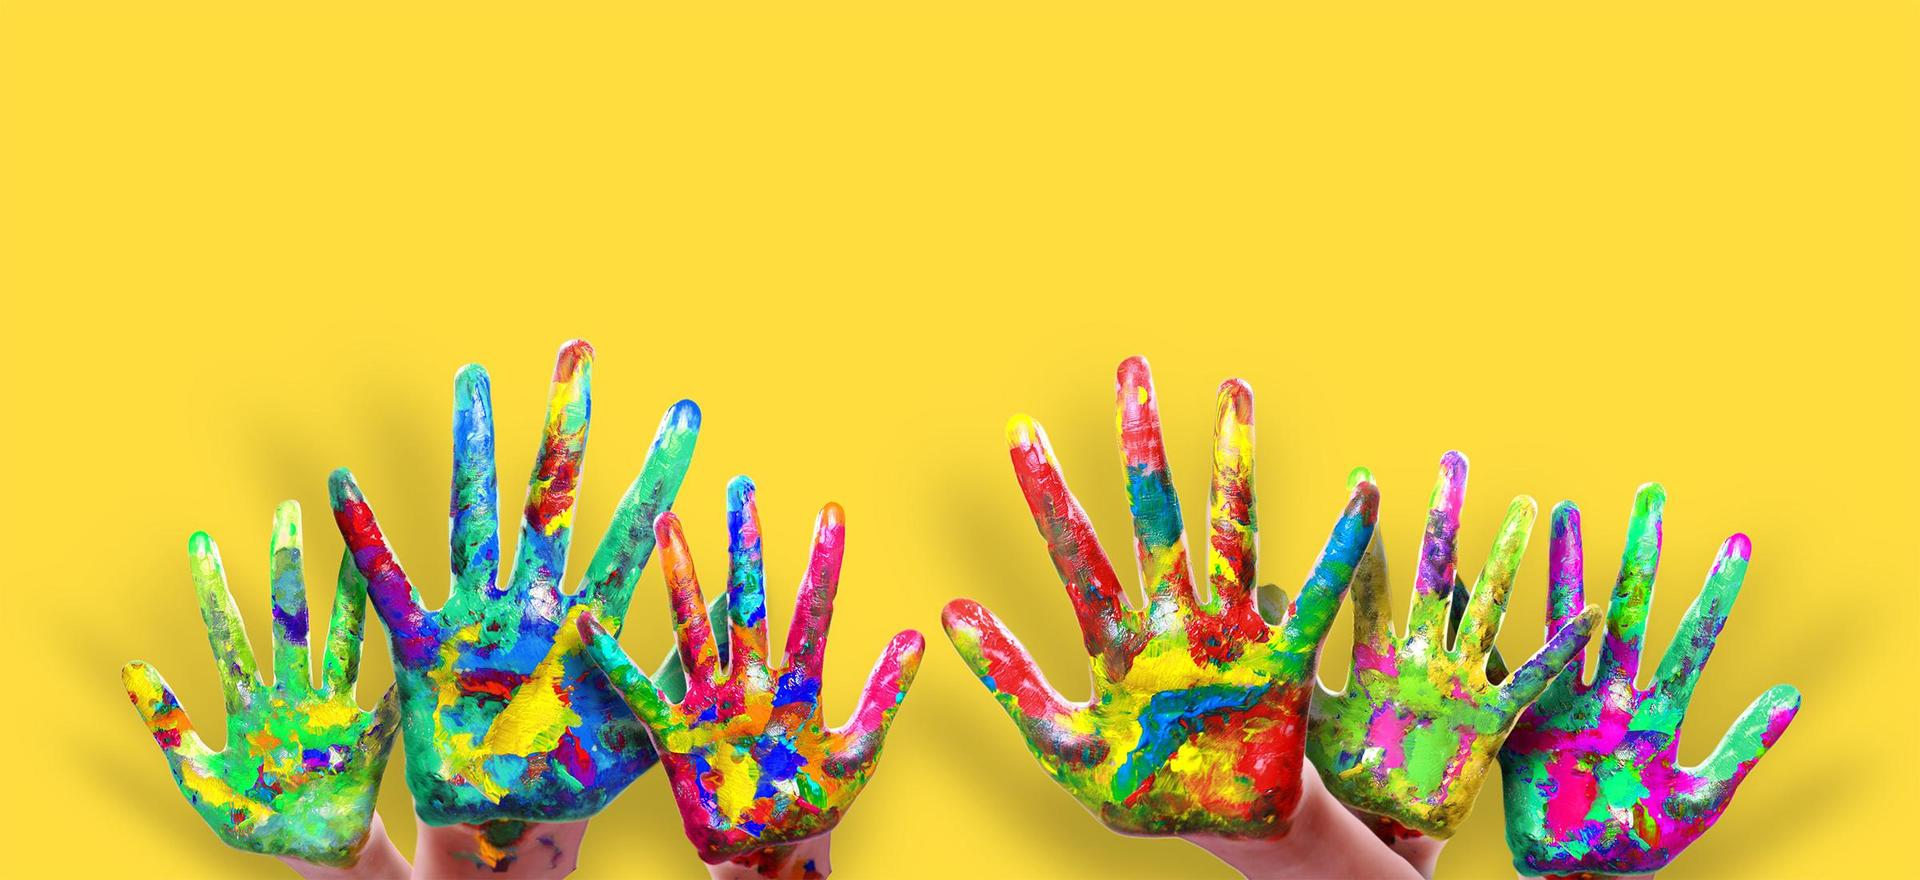 Hands covered in colorful paint colors